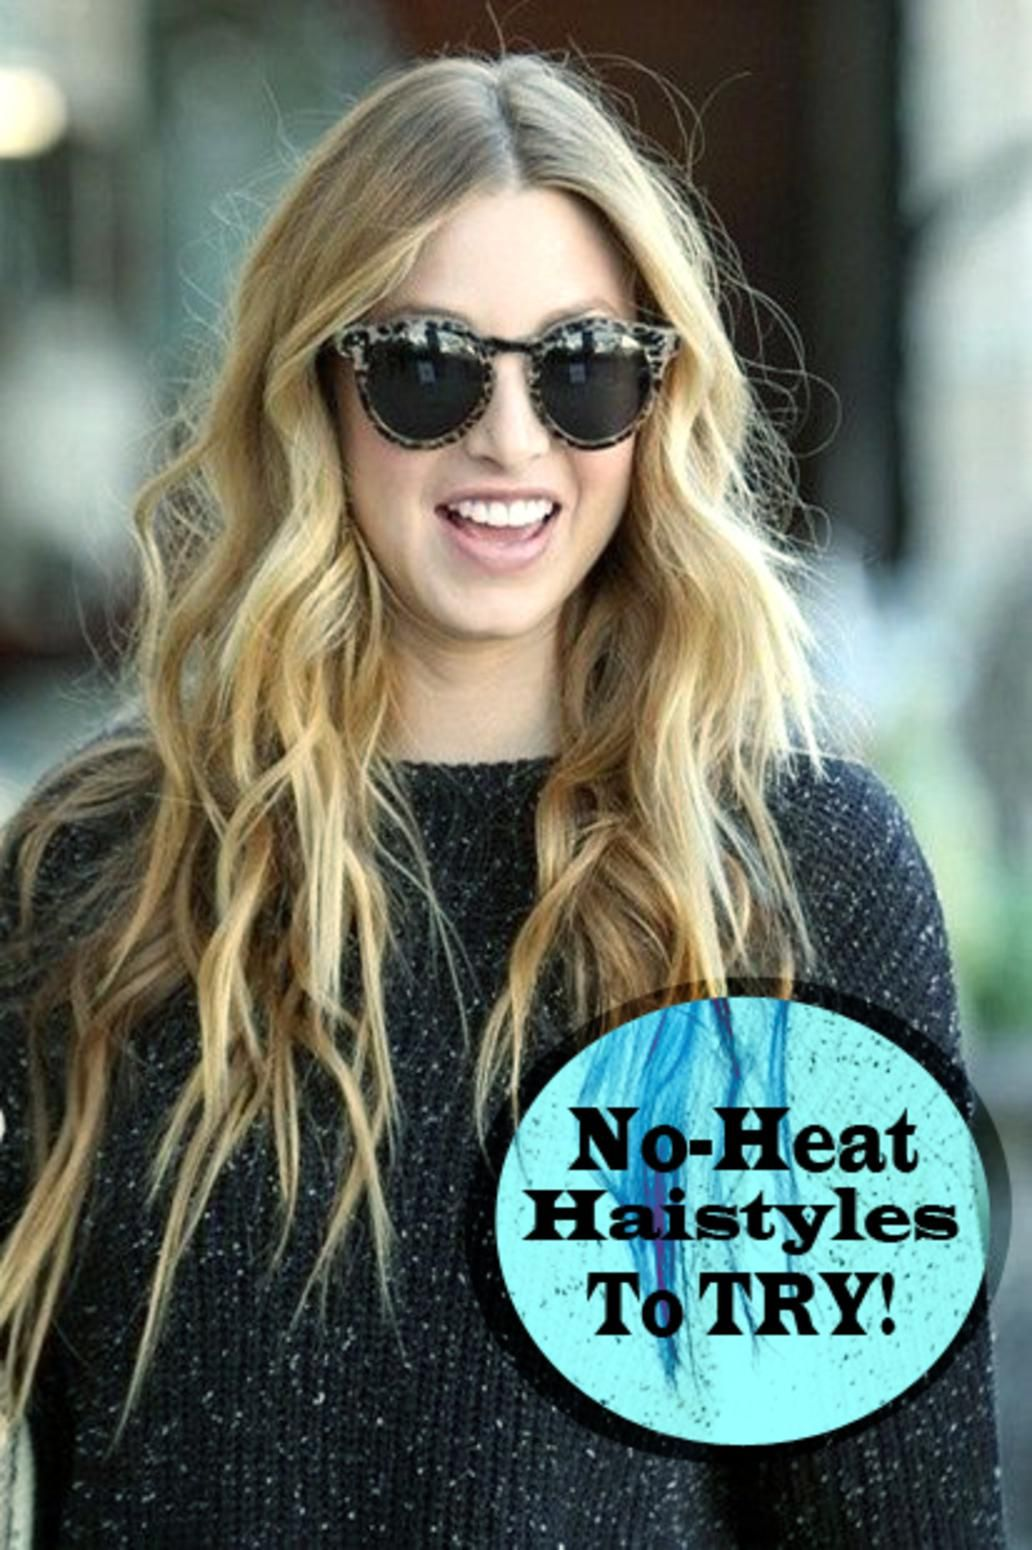 Give you hair a break and try this honestly cute hairstyles that